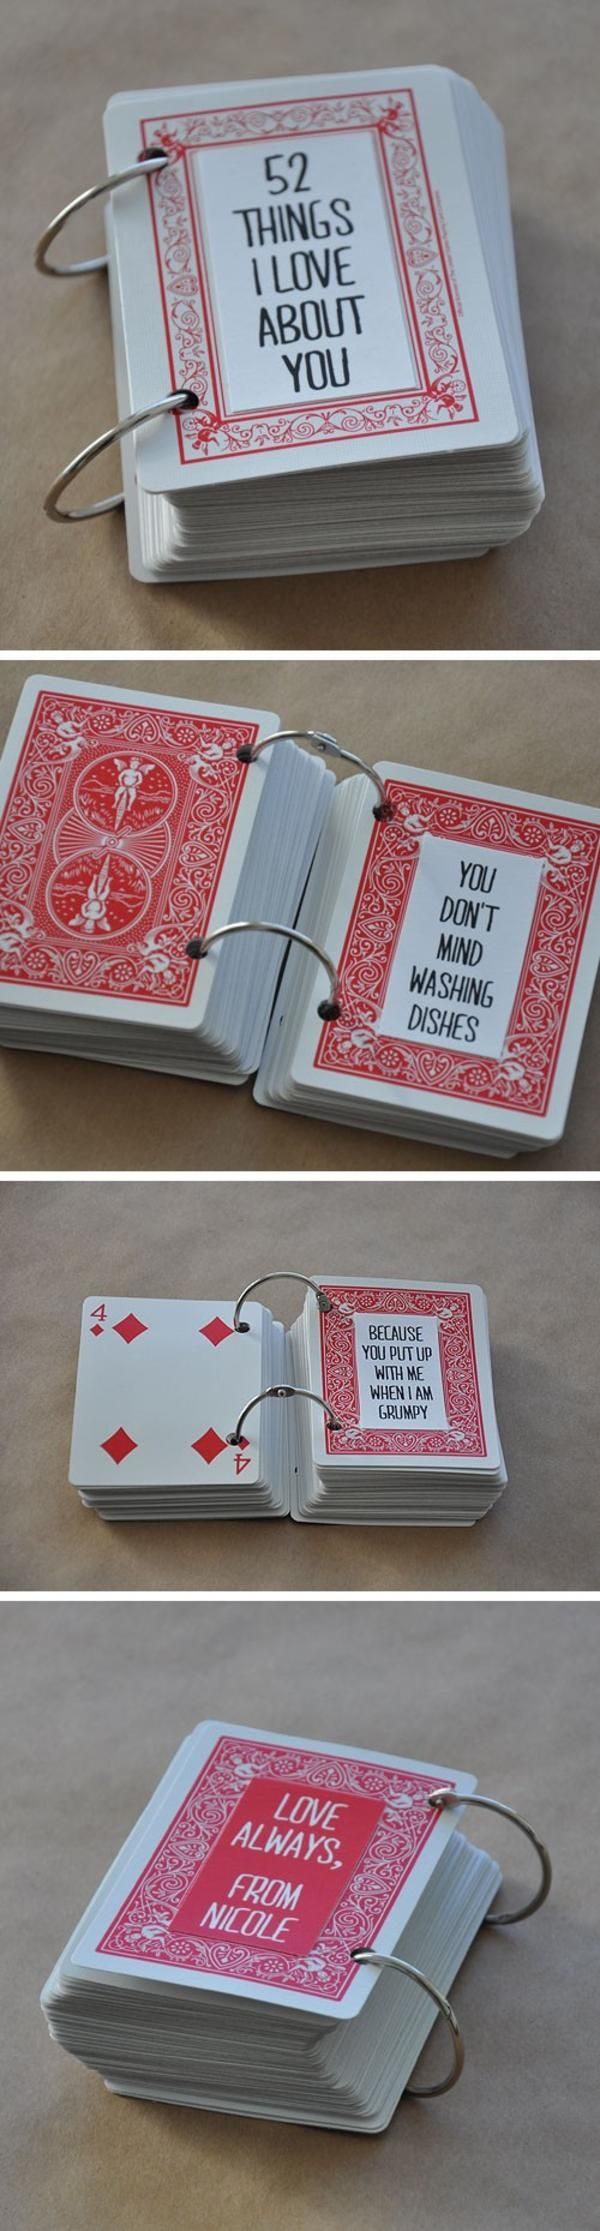 """52 Things I love about YOU"" Created From a Deck of Cards and three Rings FROM: baralho do amor"